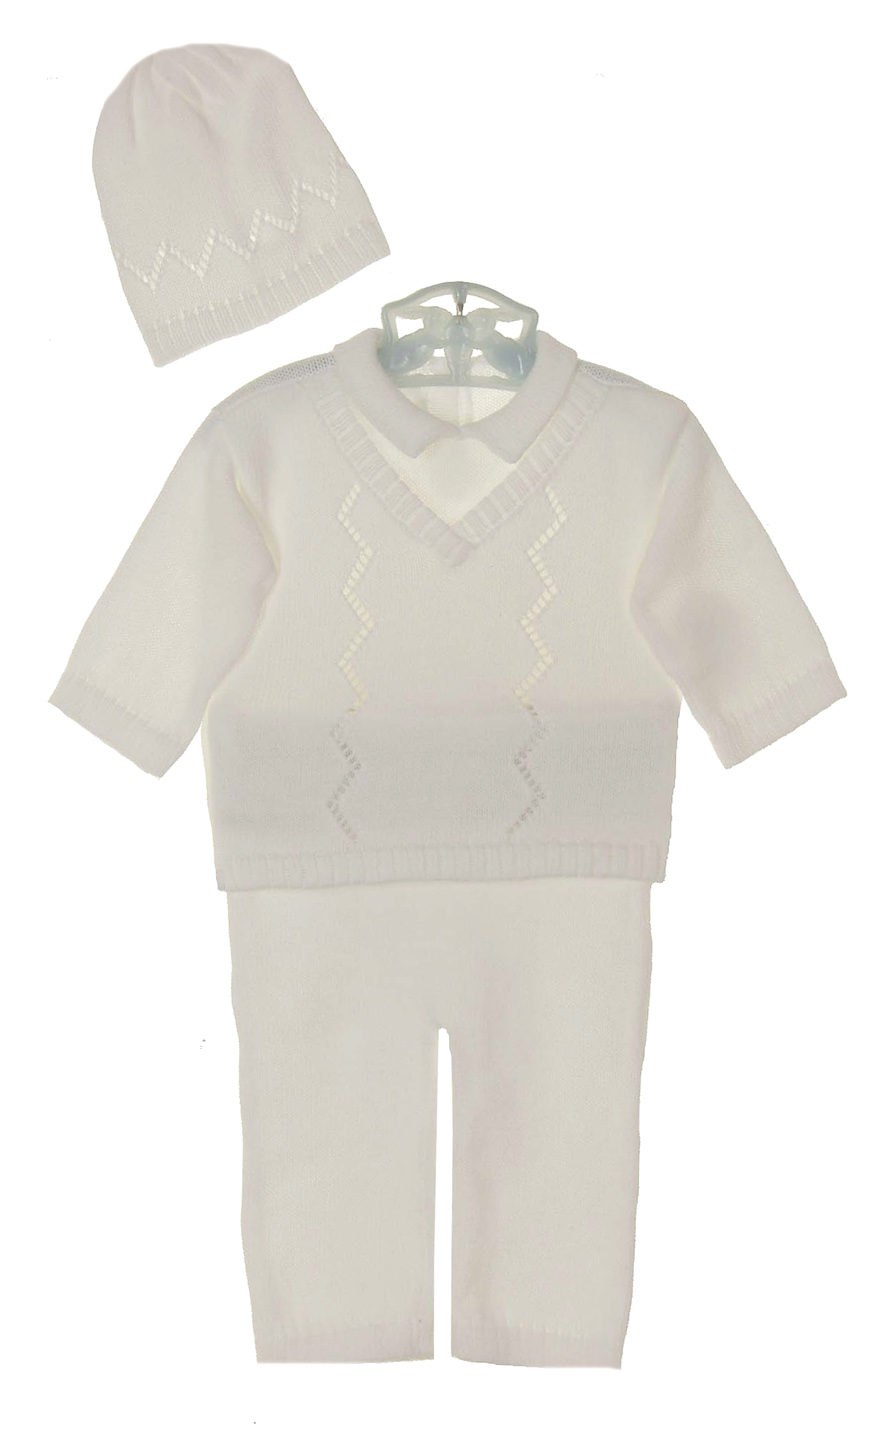 a459698bc Baby s Trousseau white cotton knit sweater and pants set with ...